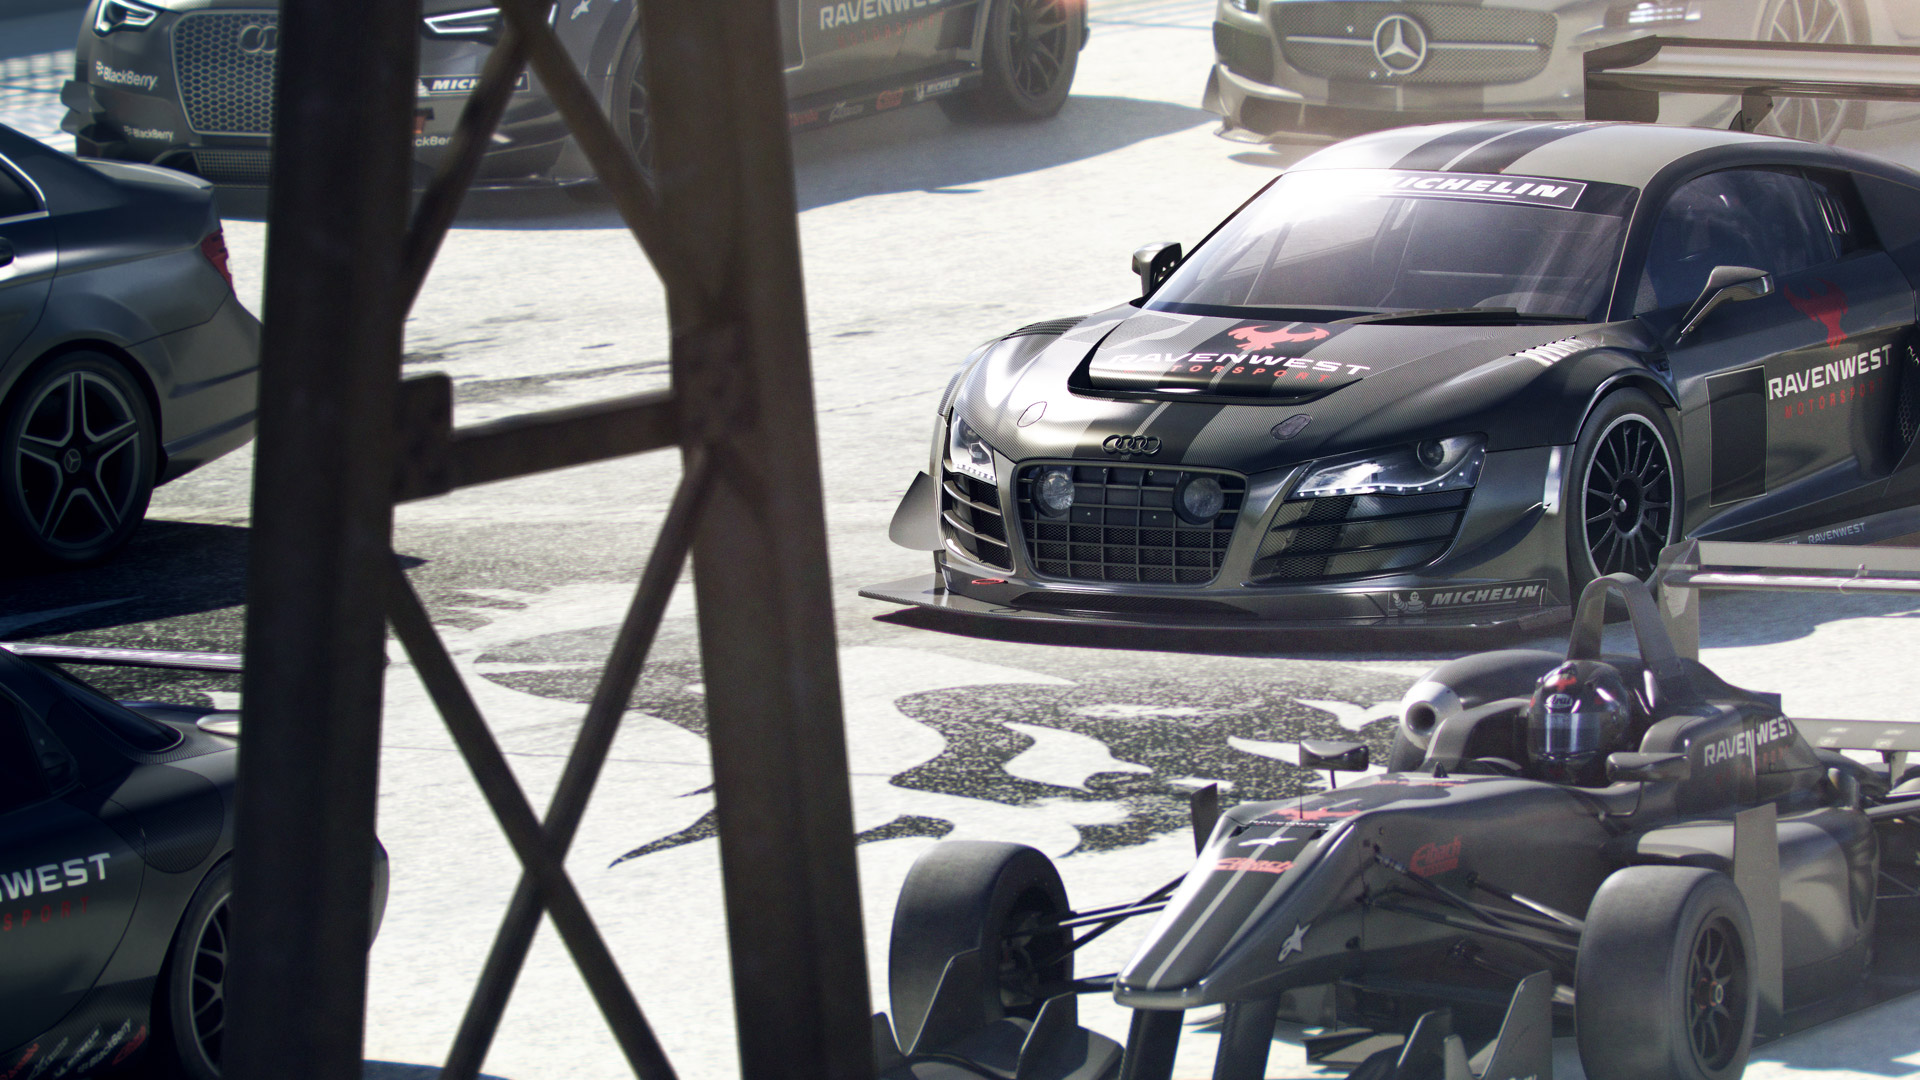 GRID Autosport Wallpaper in 1920x1080